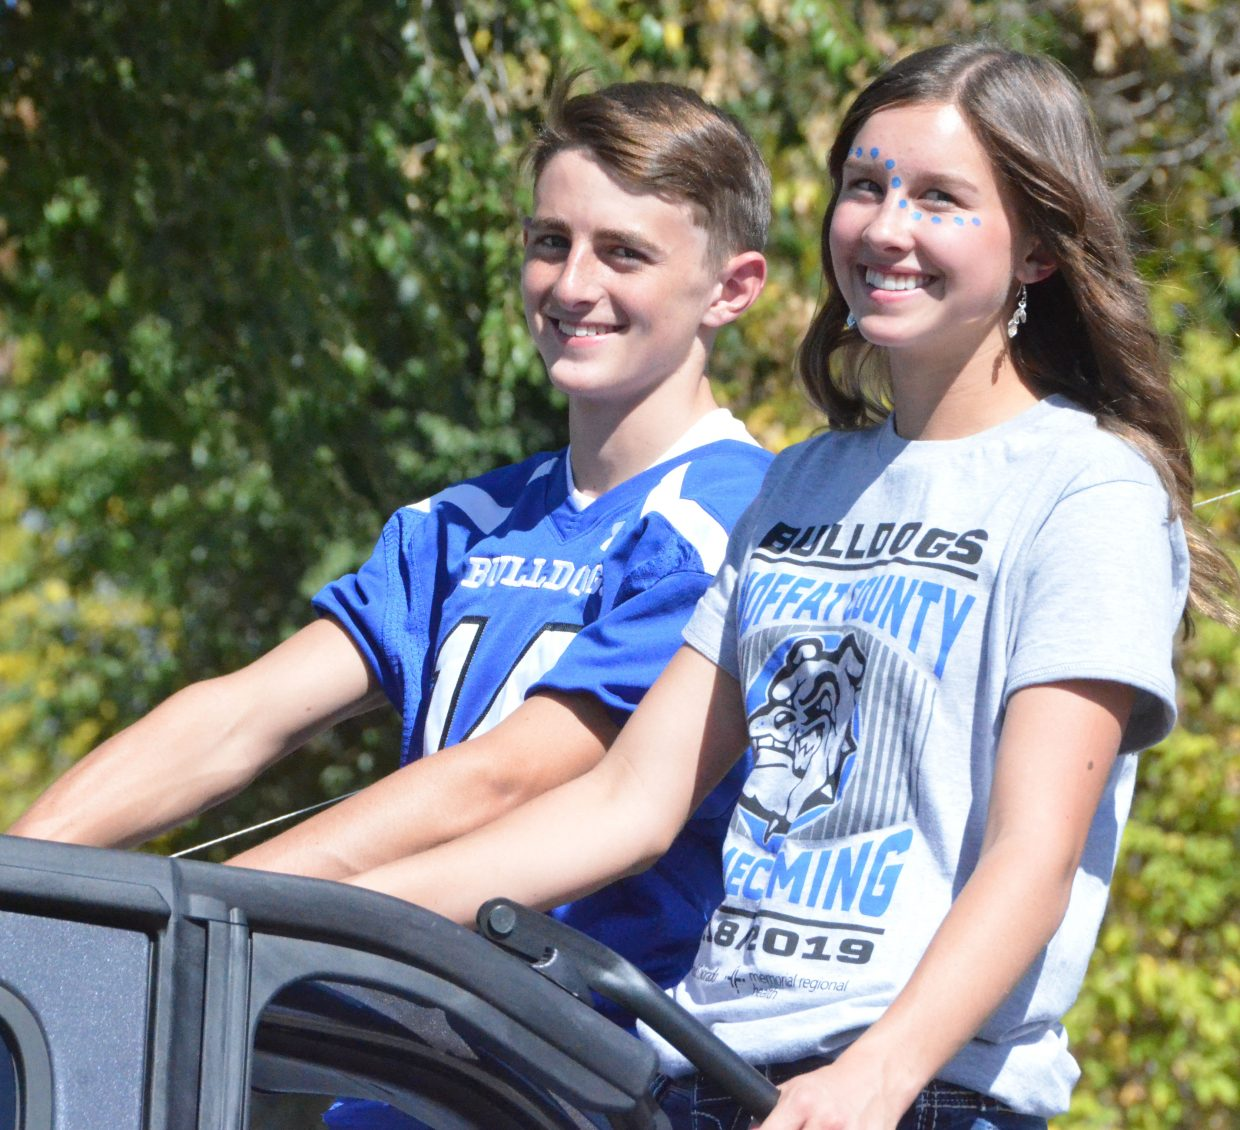 Moffat County High School's Blake Juergens and Emaleigh Papierski serve as the sophomore class attendants during the Homecoming parade Friday.